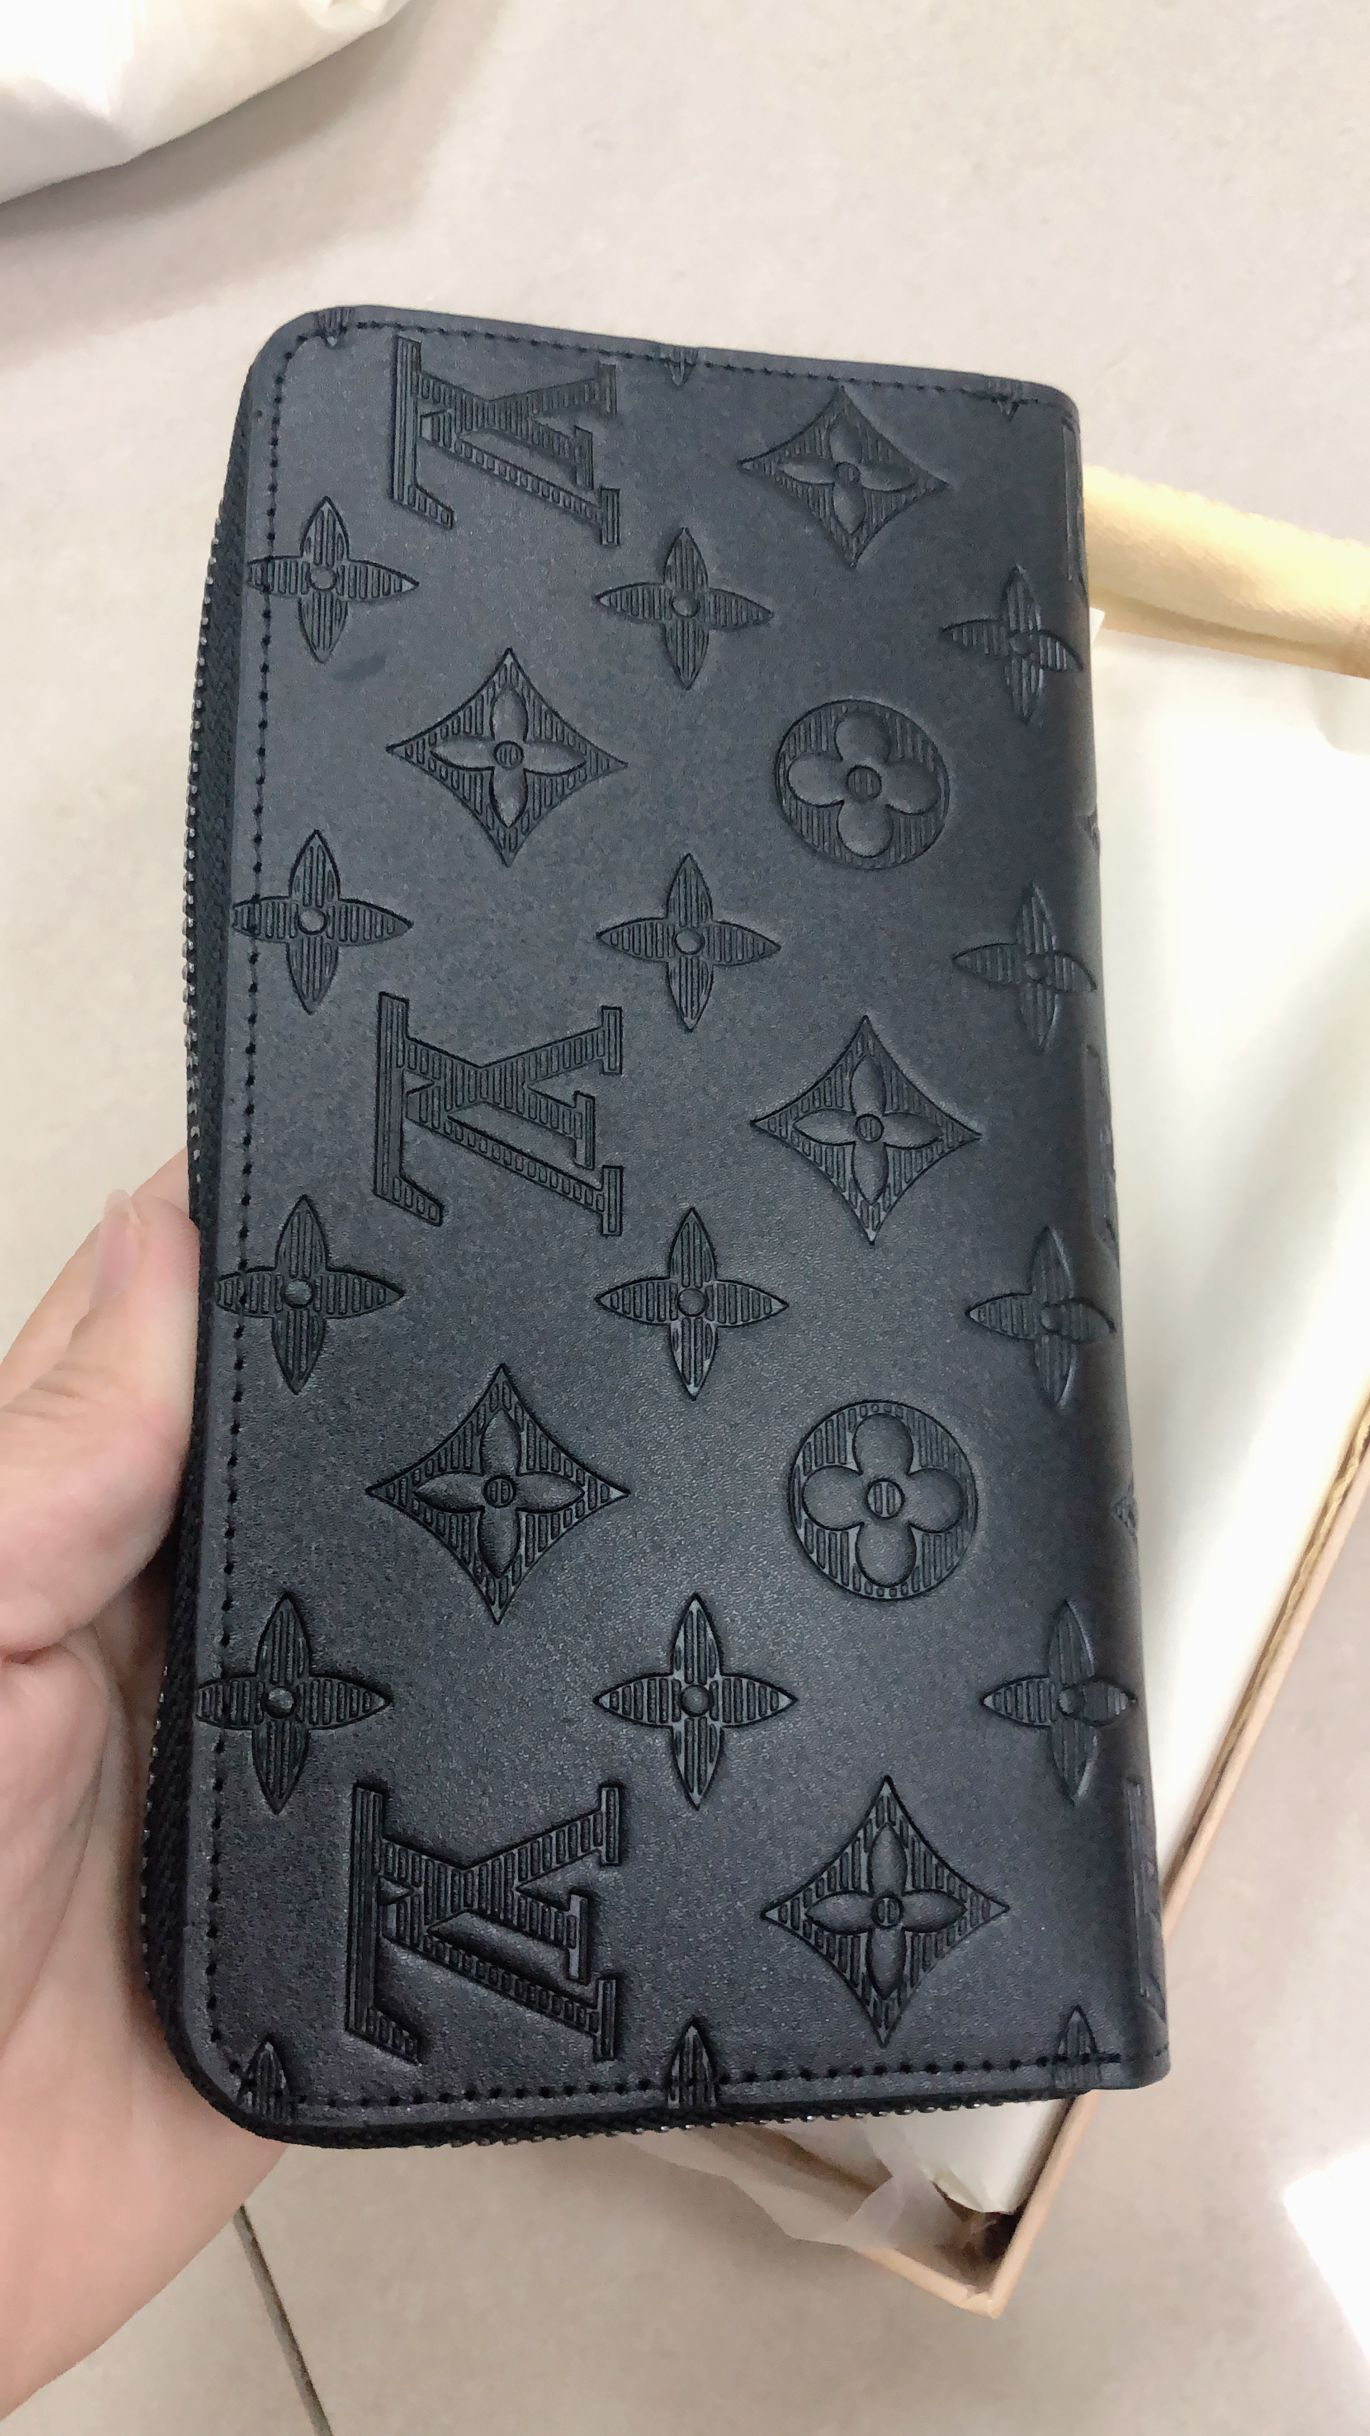 Louis Vuitton ルイヴィトン メンズ 財布 日本国内発送 スーパーコピー 後払い m60017